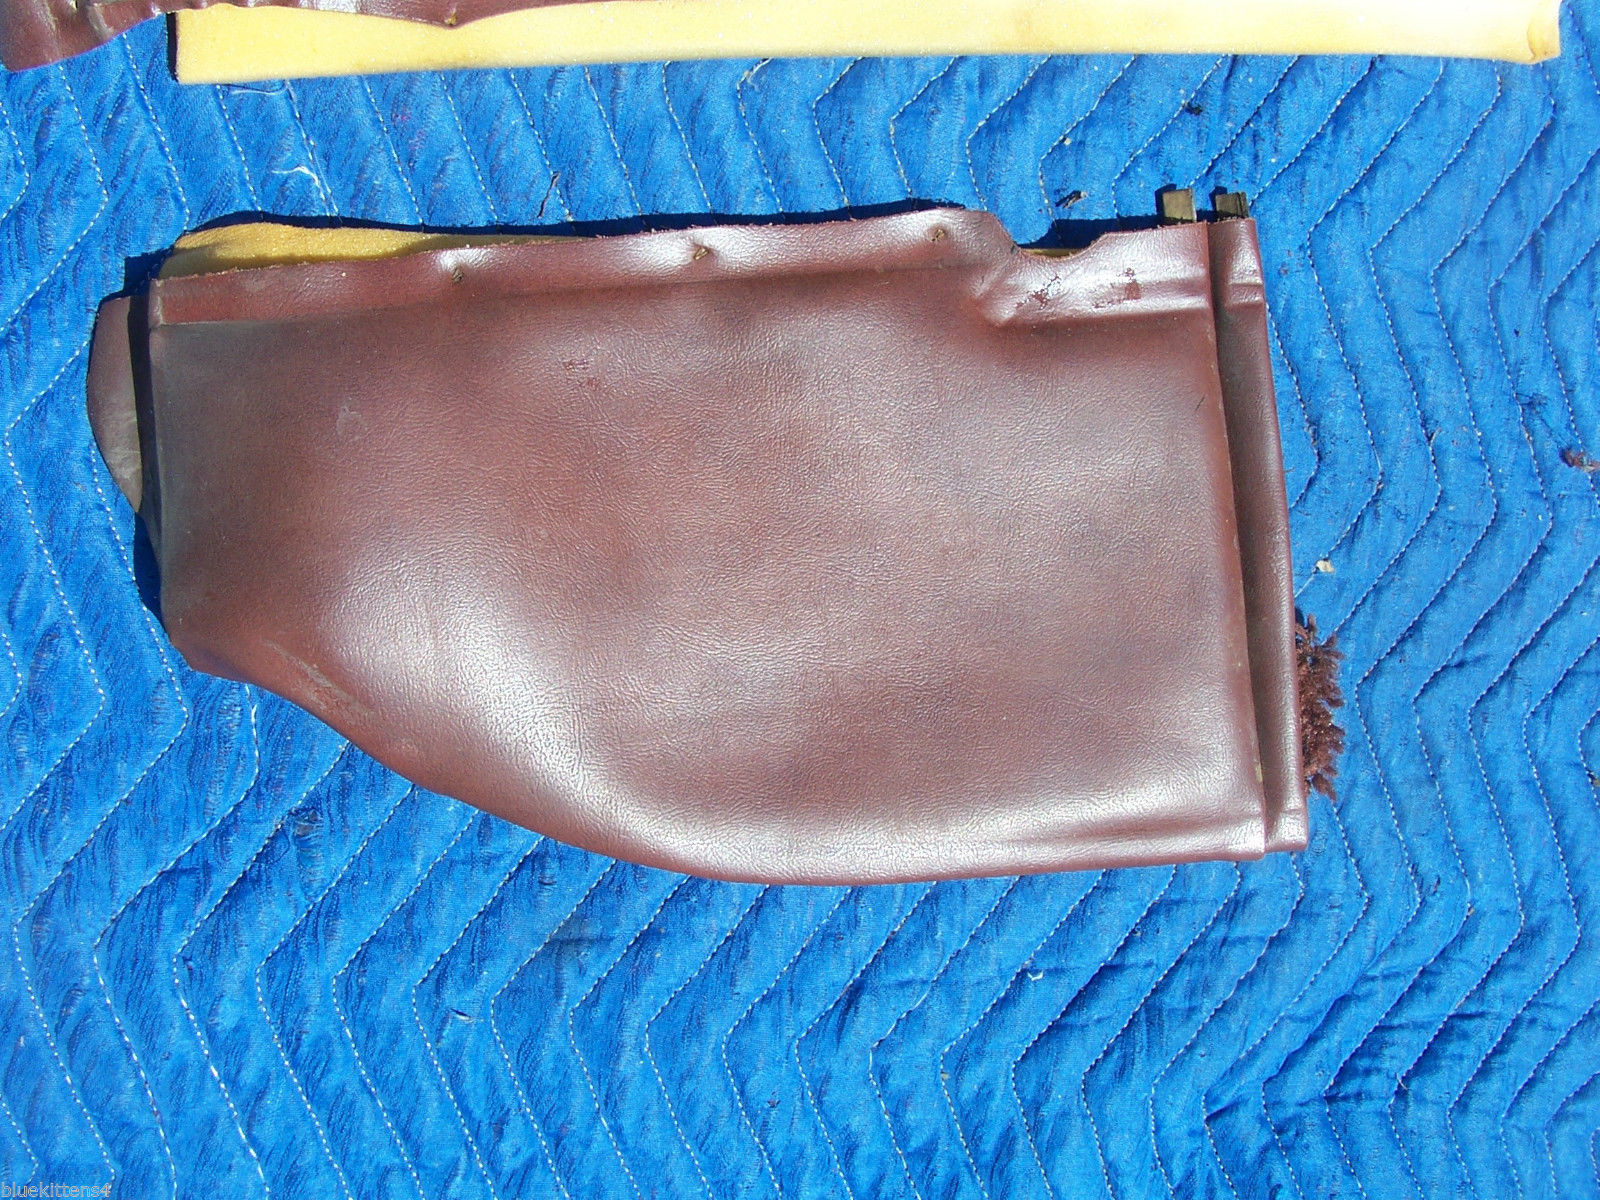 1979 COUPE DEVILLE RIGHT DOOR PANEL PADS OEM USED GENUINE GM CADILLAC PART 1978